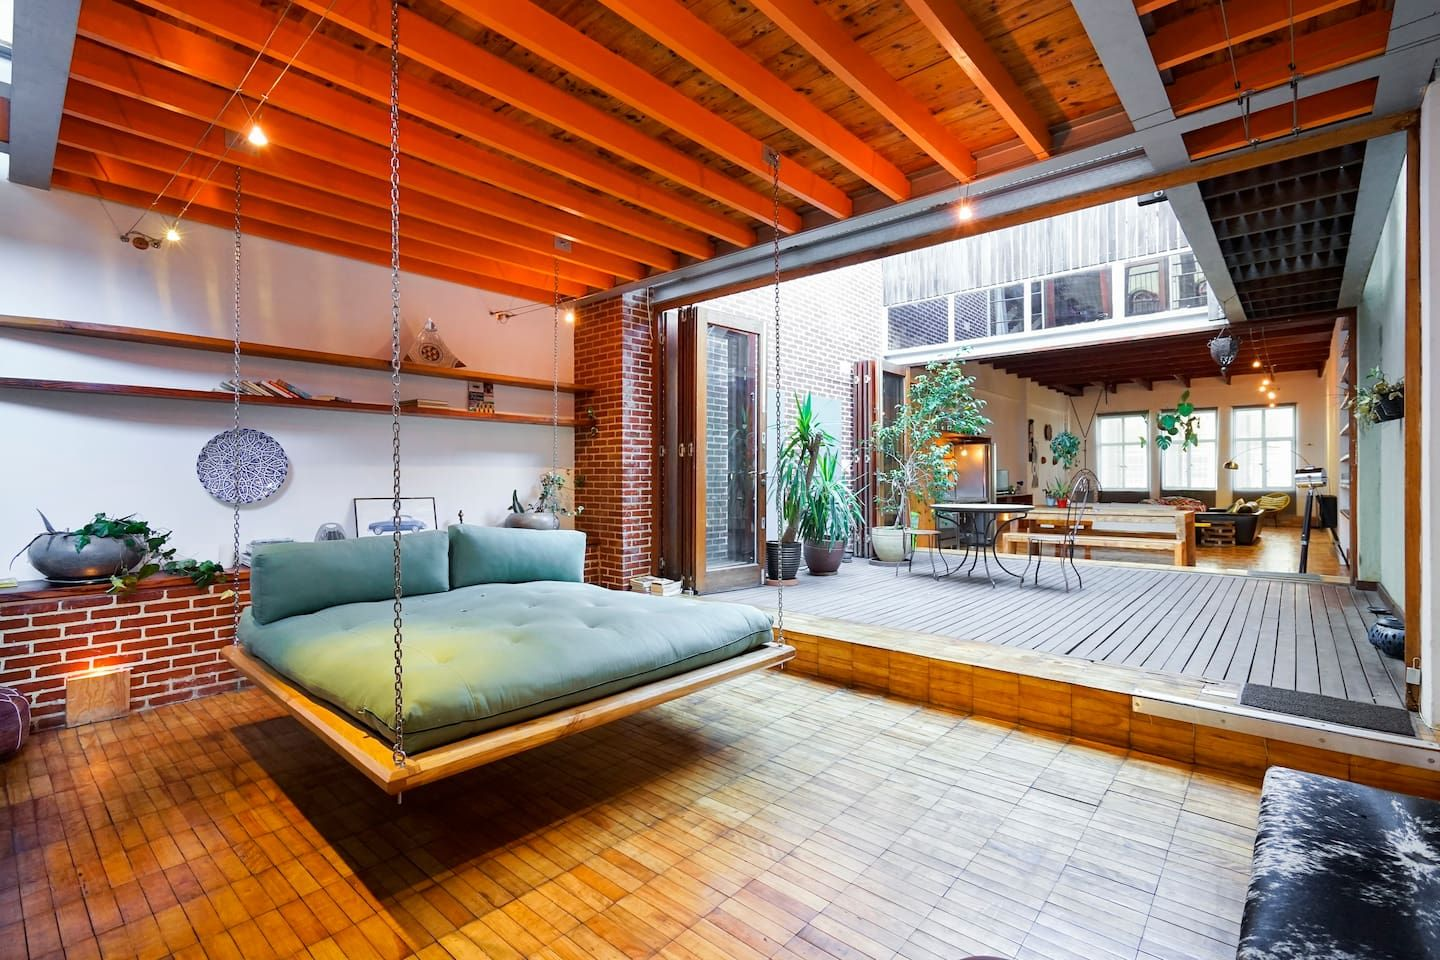 Pin by Gwen Swanson on : Best of Airbnb : | Lofts for rent ...